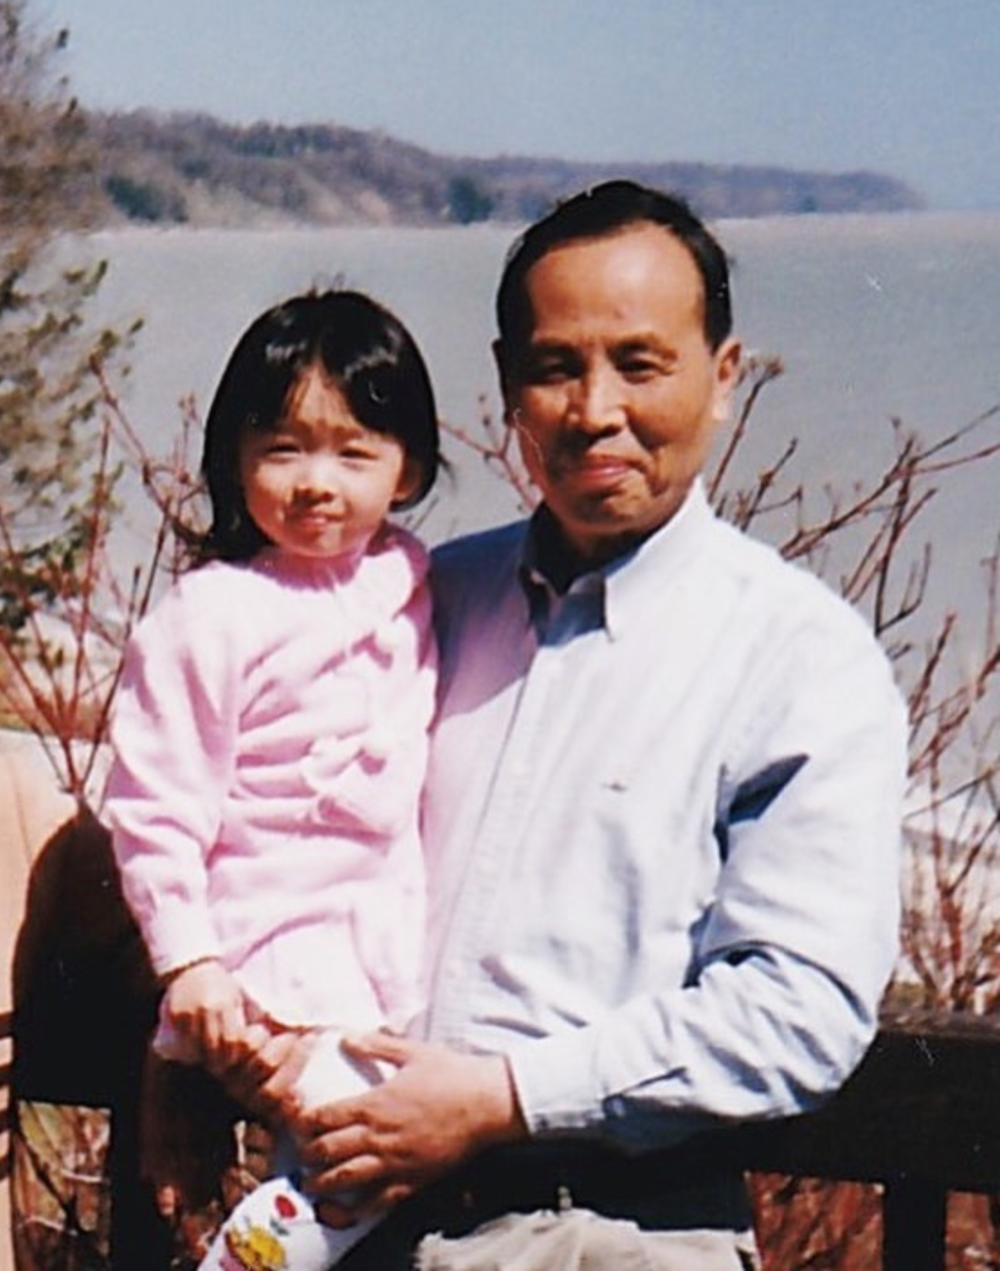 Me and my Yeye, circa 1998.